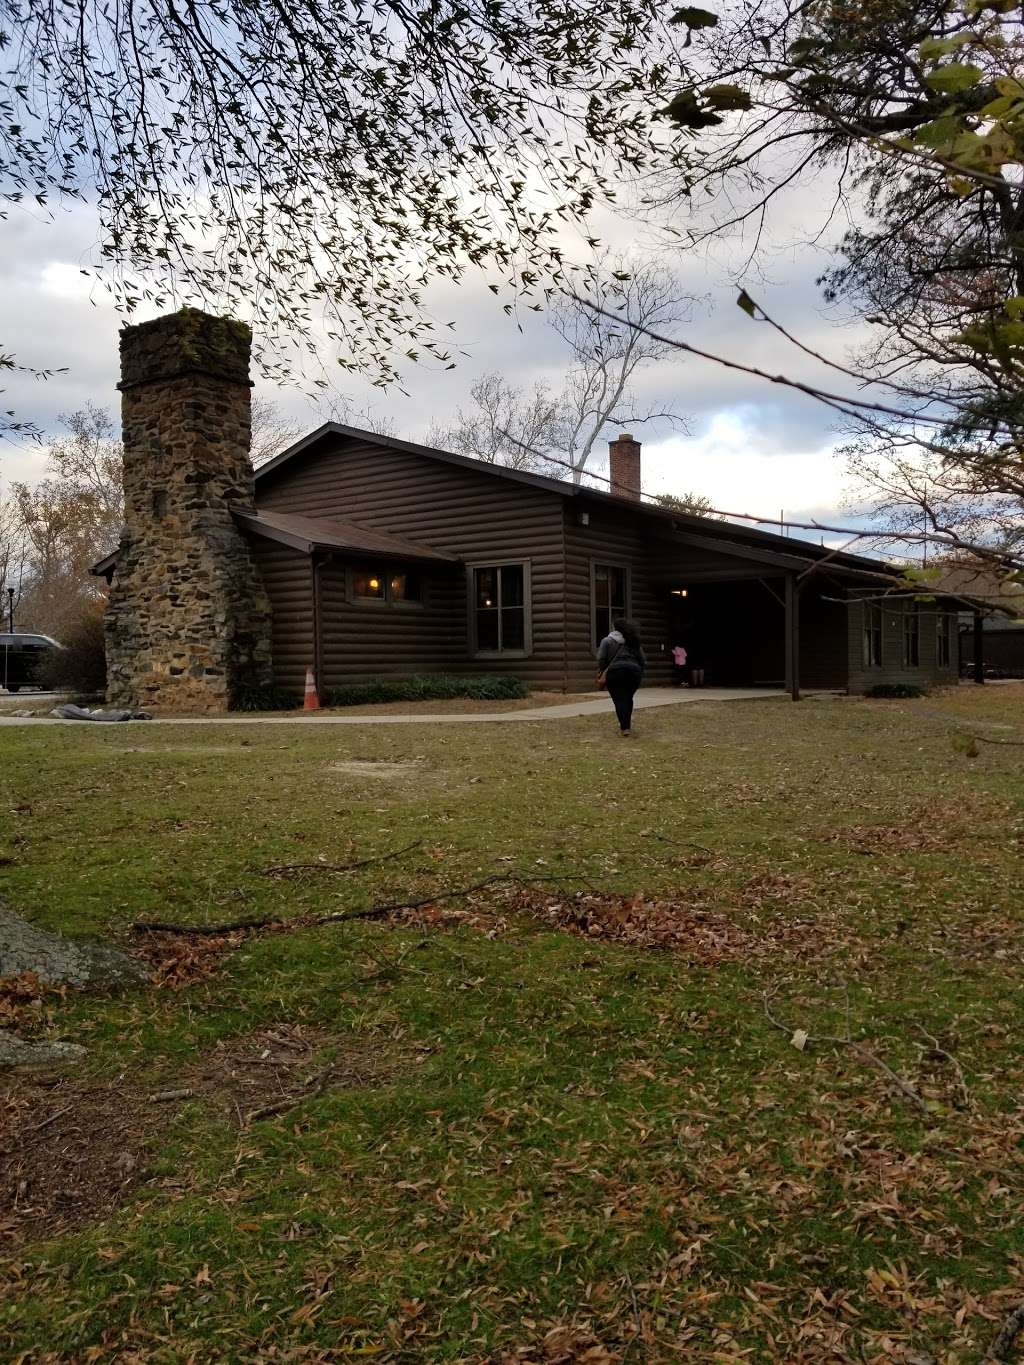 Burba Lake Cottage - lodging  | Photo 4 of 10 | Address: 4424 McKay St, Fort Meade, MD 20755, USA | Phone: (301) 677-3029